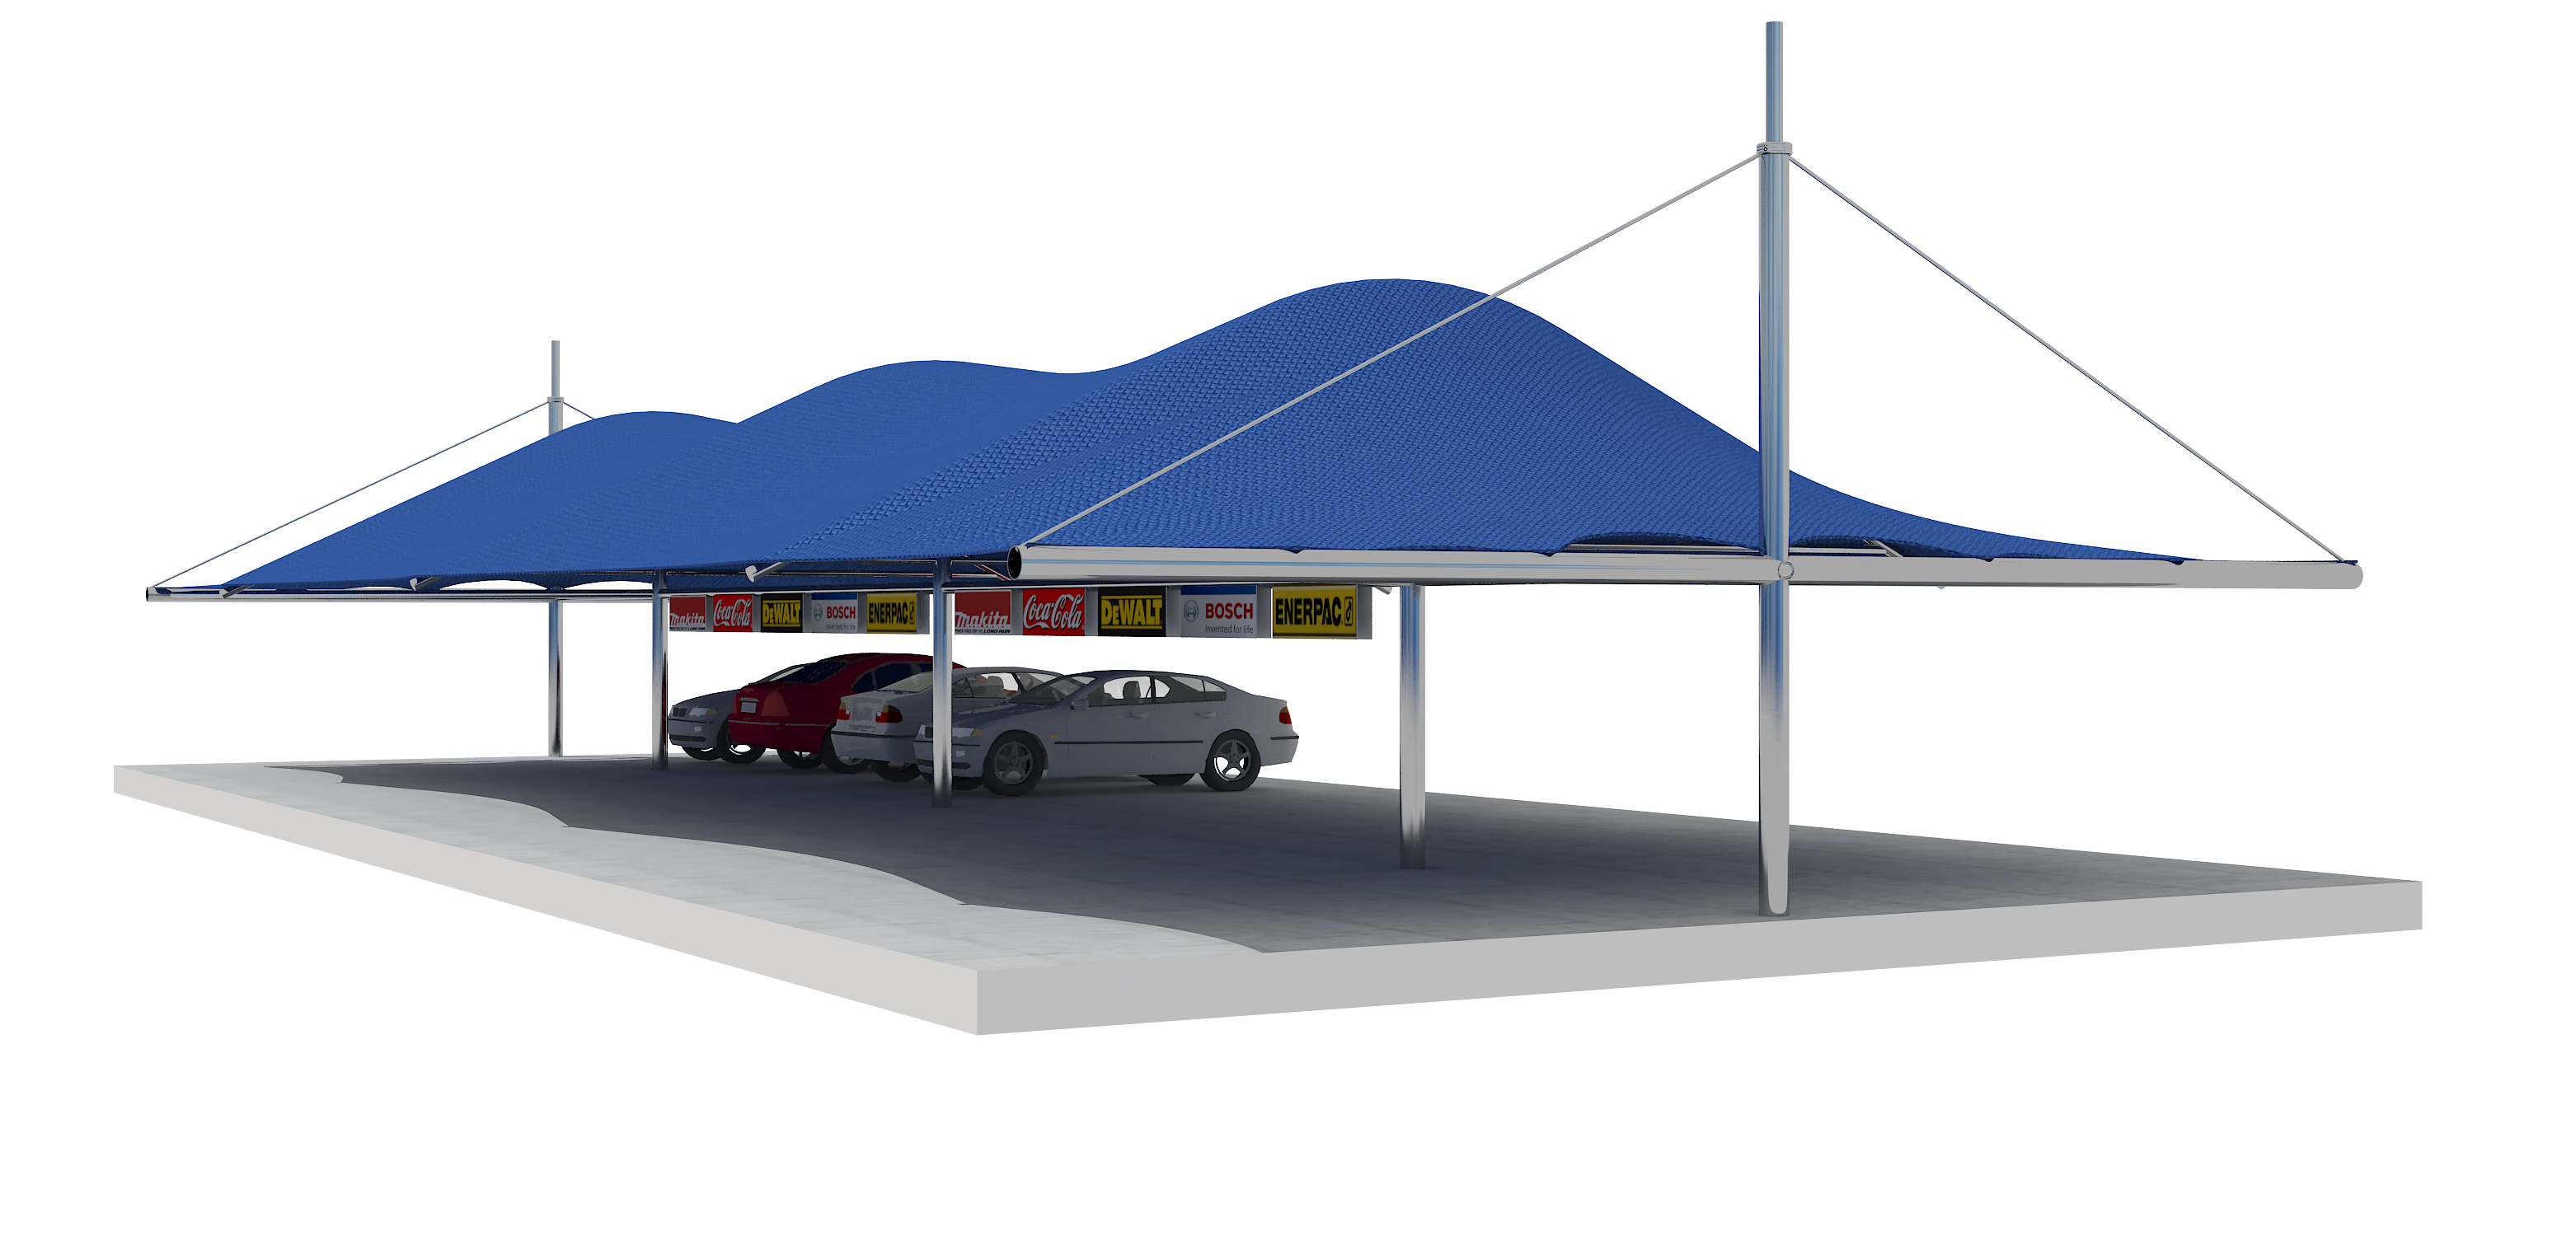 car garages on one shed kc easy lot specialty all houses sheds portable buildings tiny custom garage storage